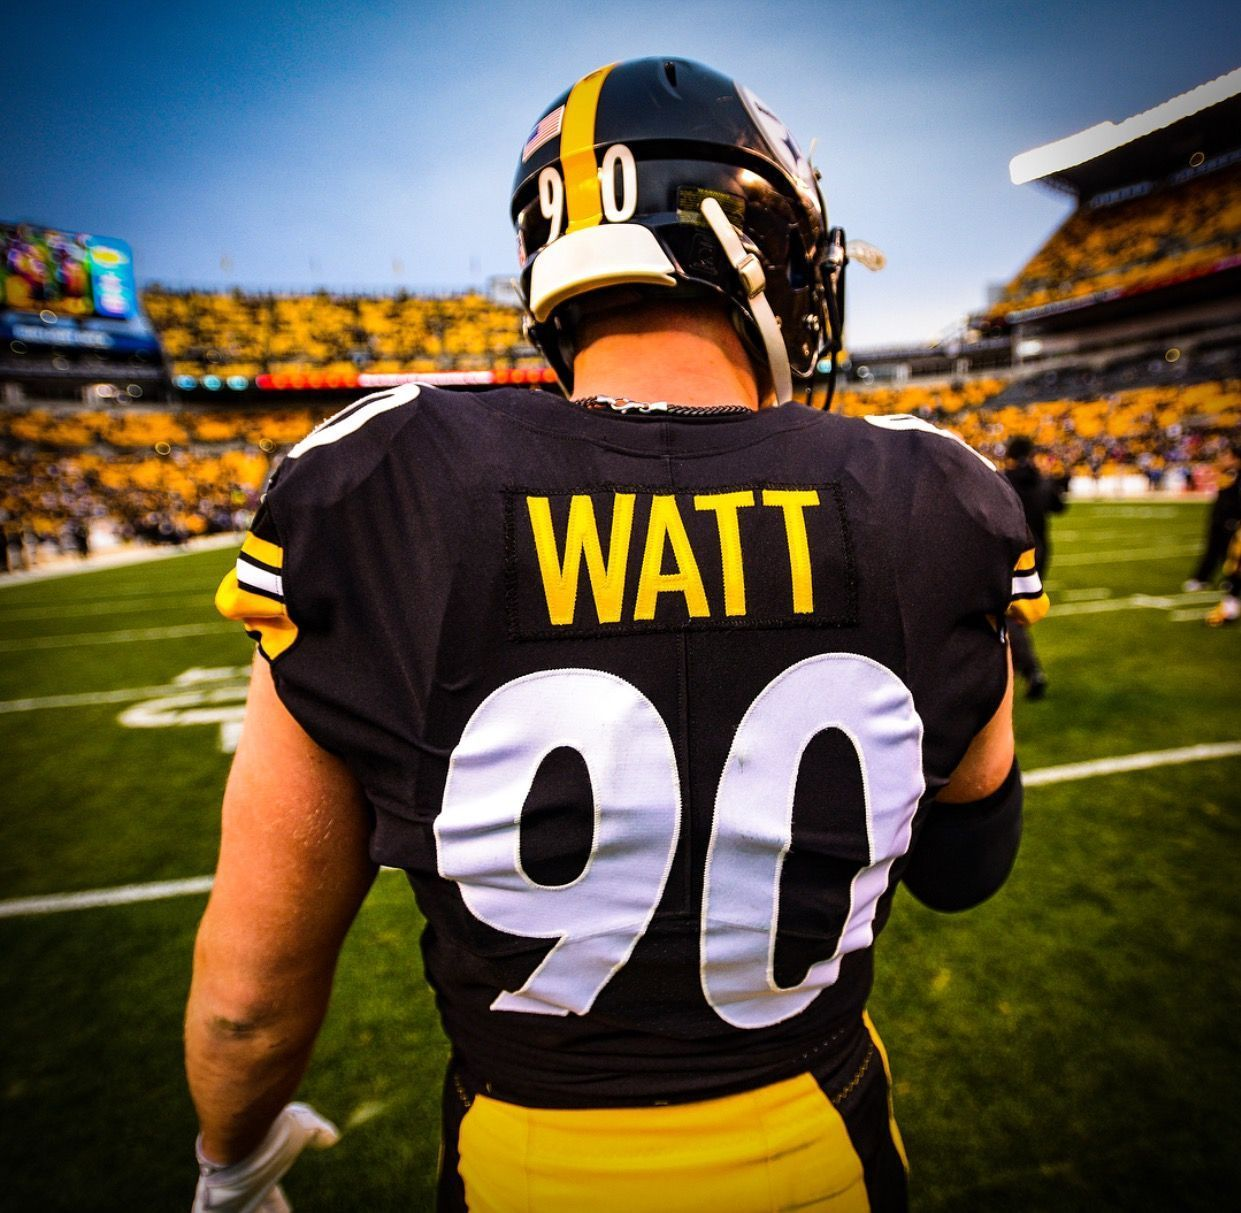 newest 002f6 02a30 PITTSBURGH STEELERS~ T J WATT #90 #NFLFootballBoys ...